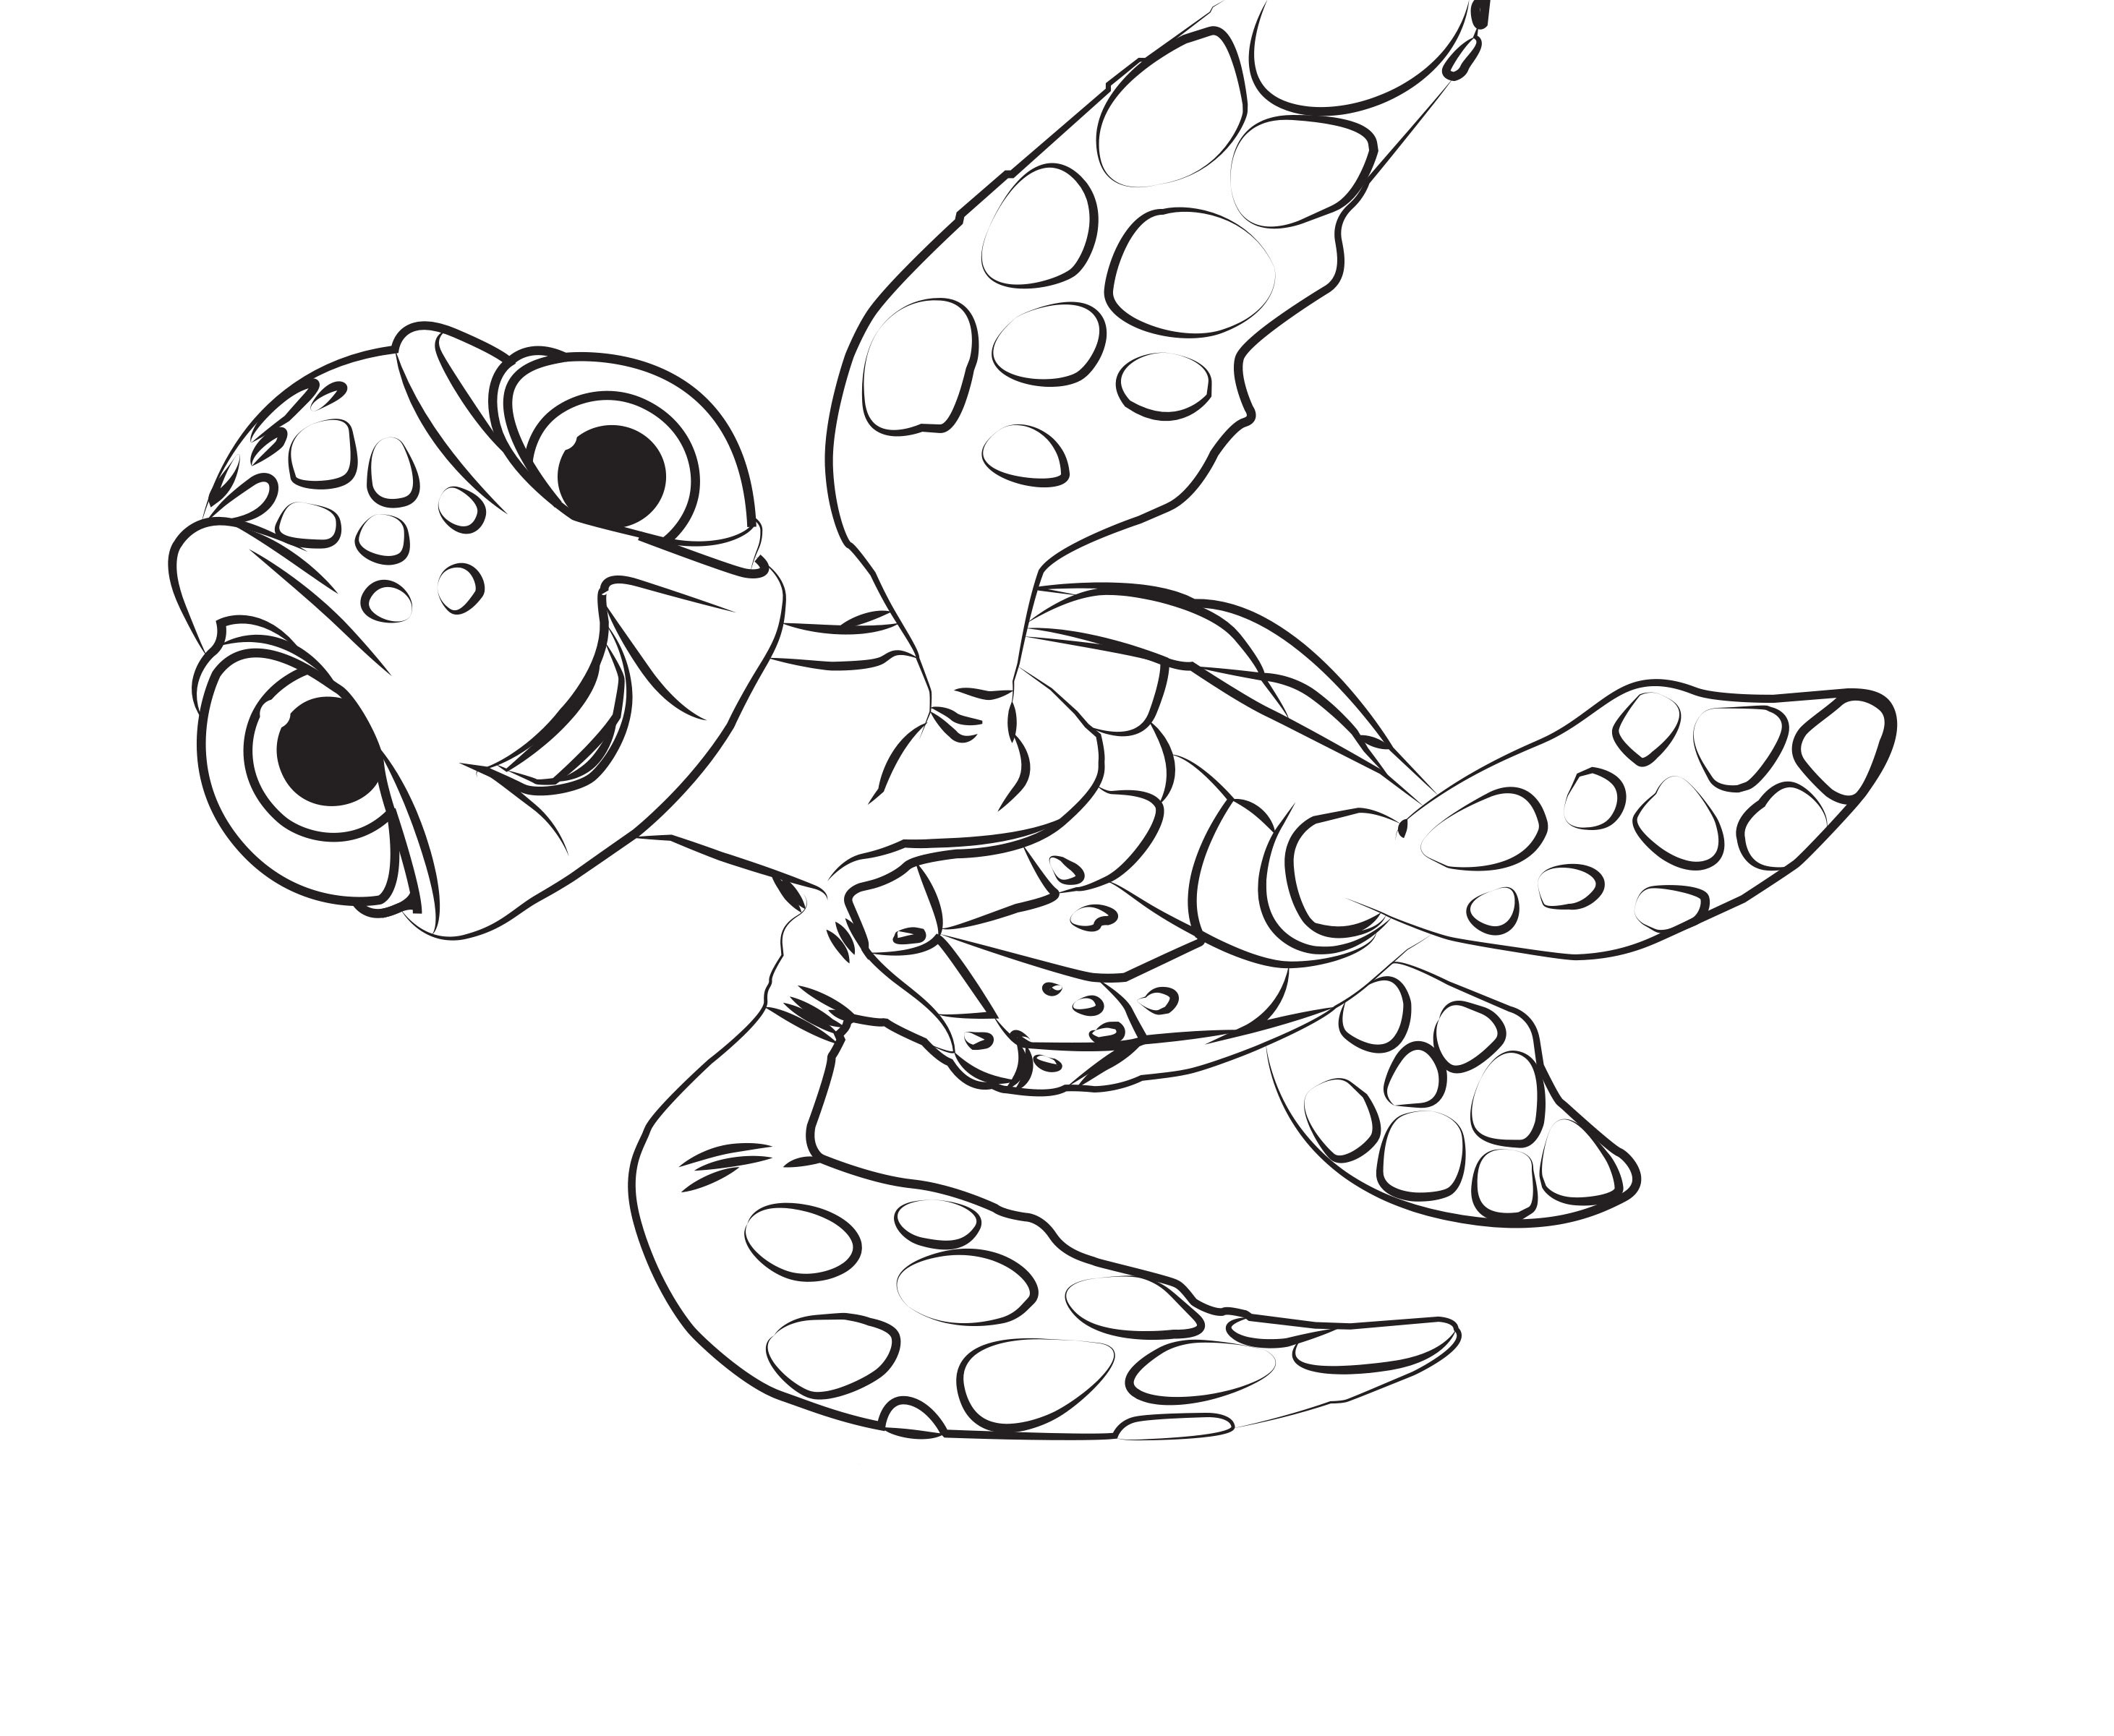 Finding Dory coloring pages to